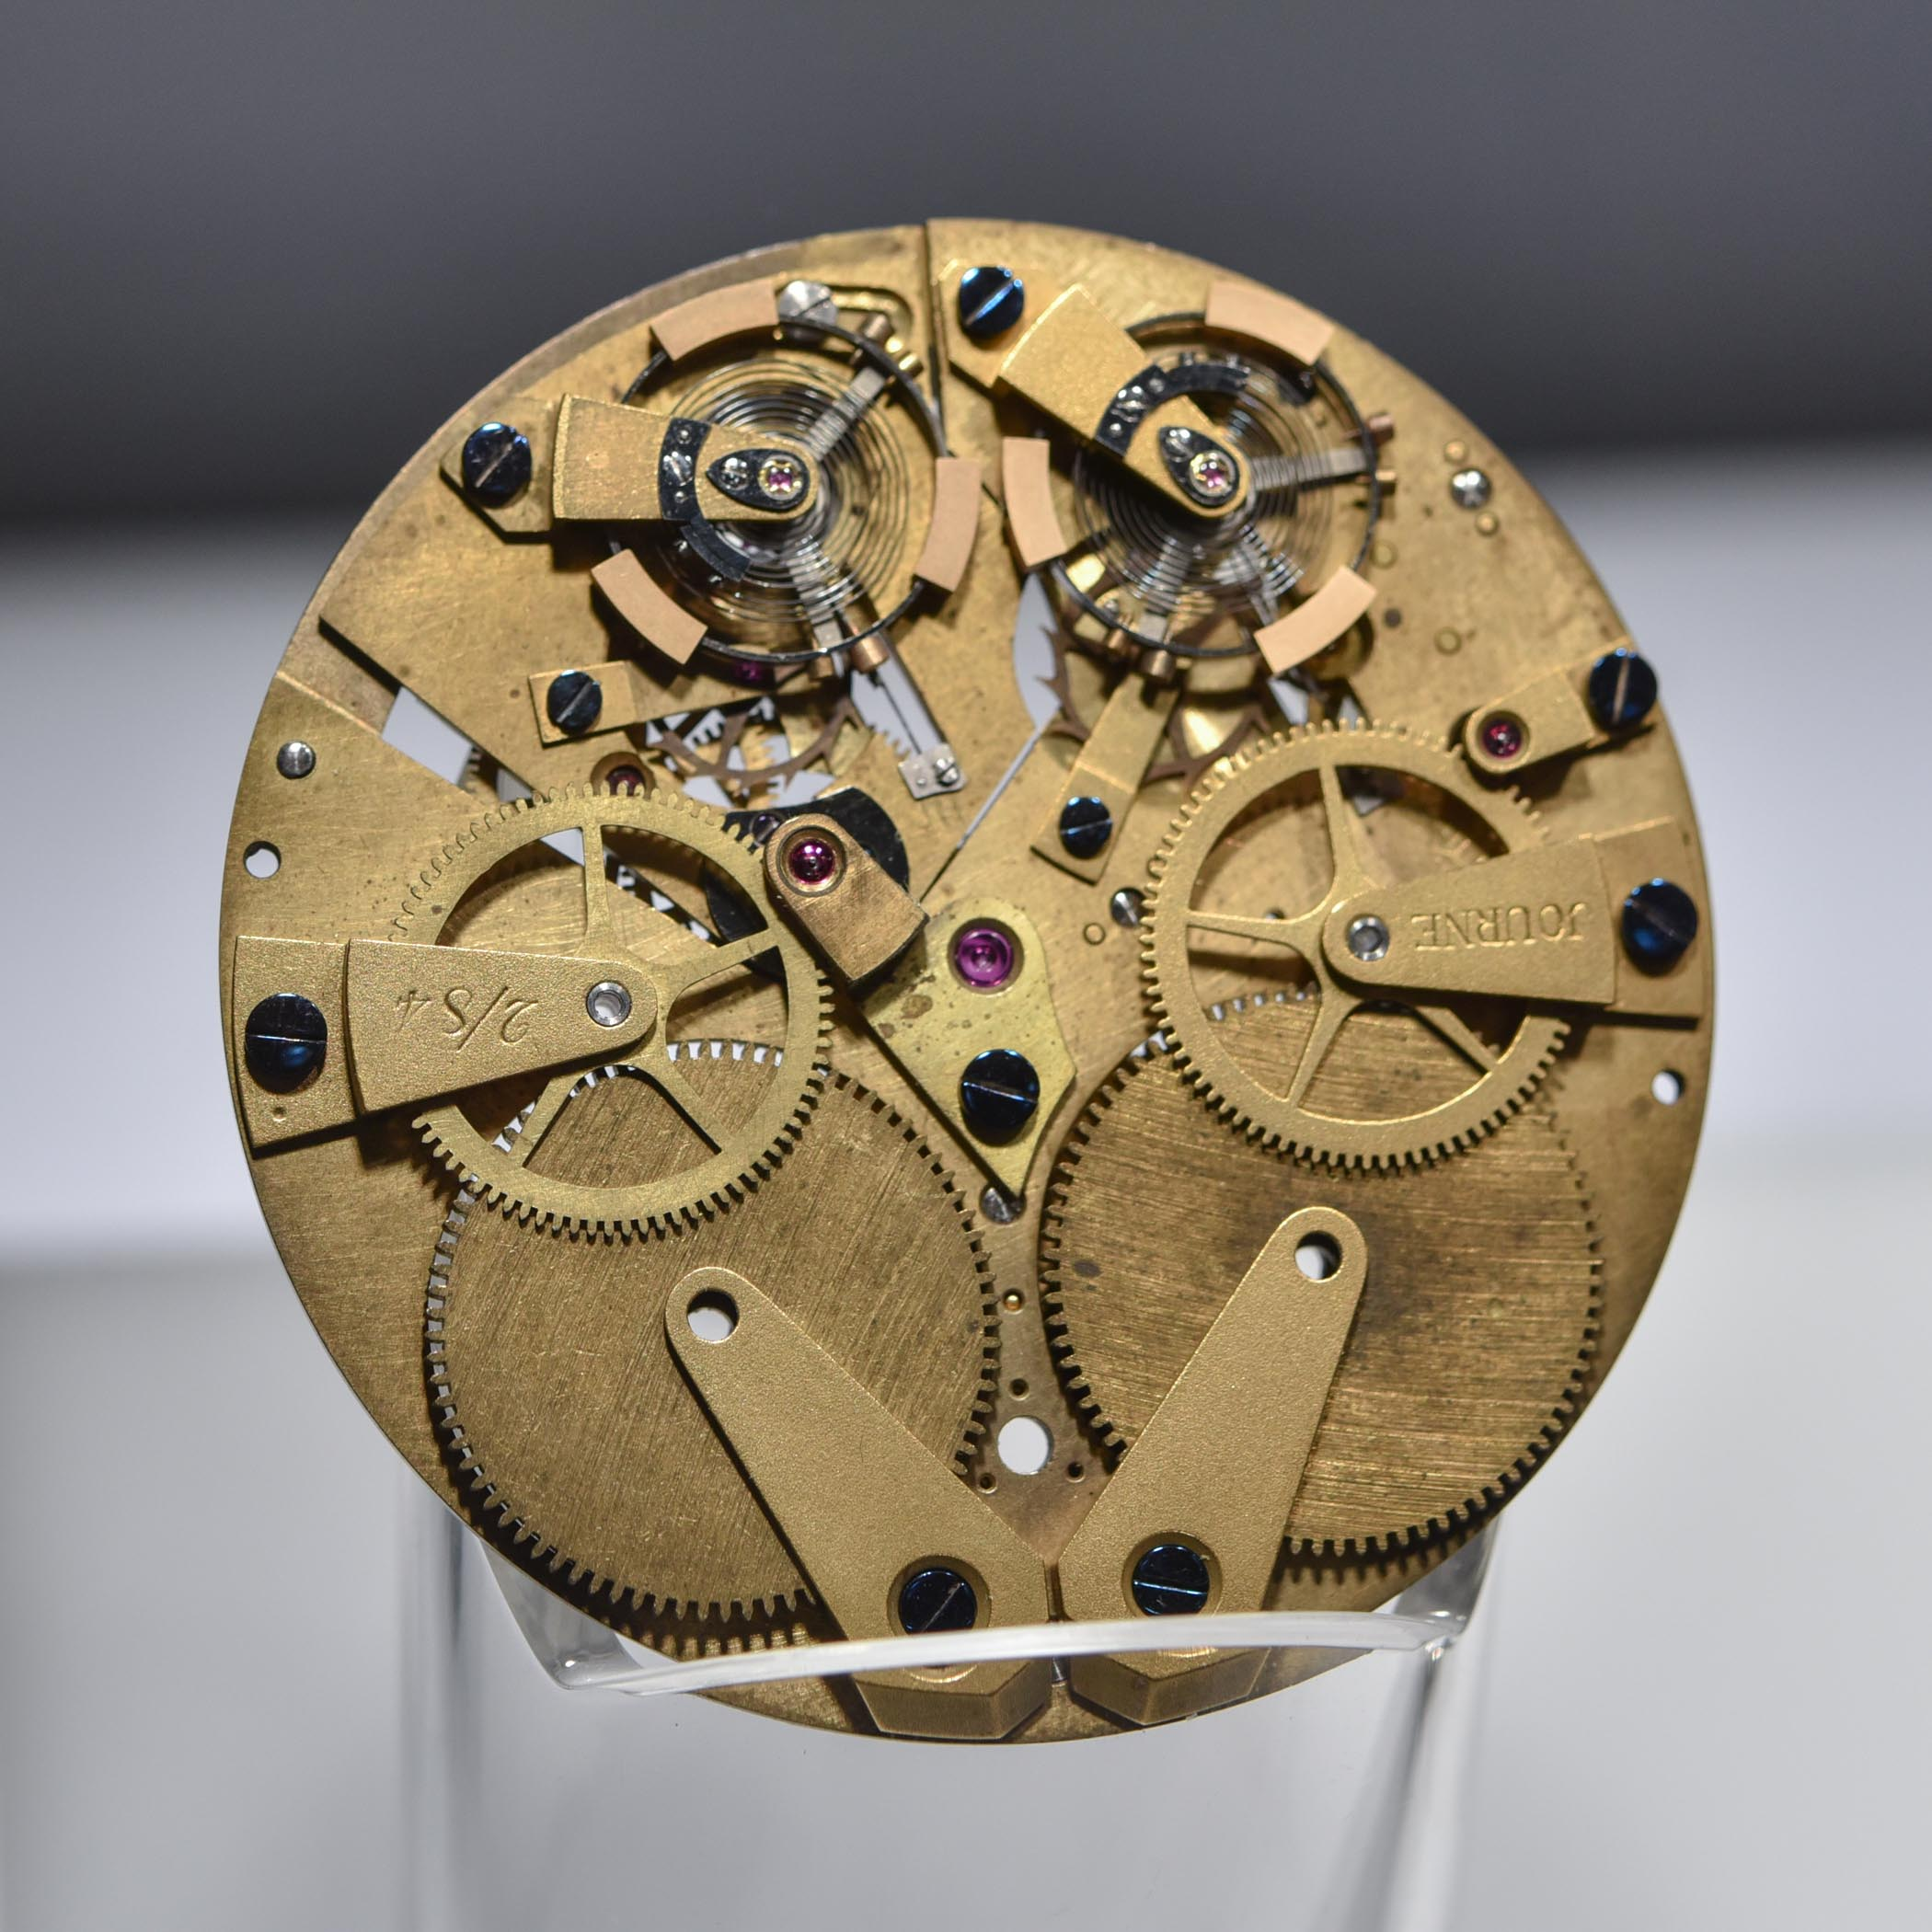 FP-Journe-Chronometre-a-Resonance-prototype-1.jpg